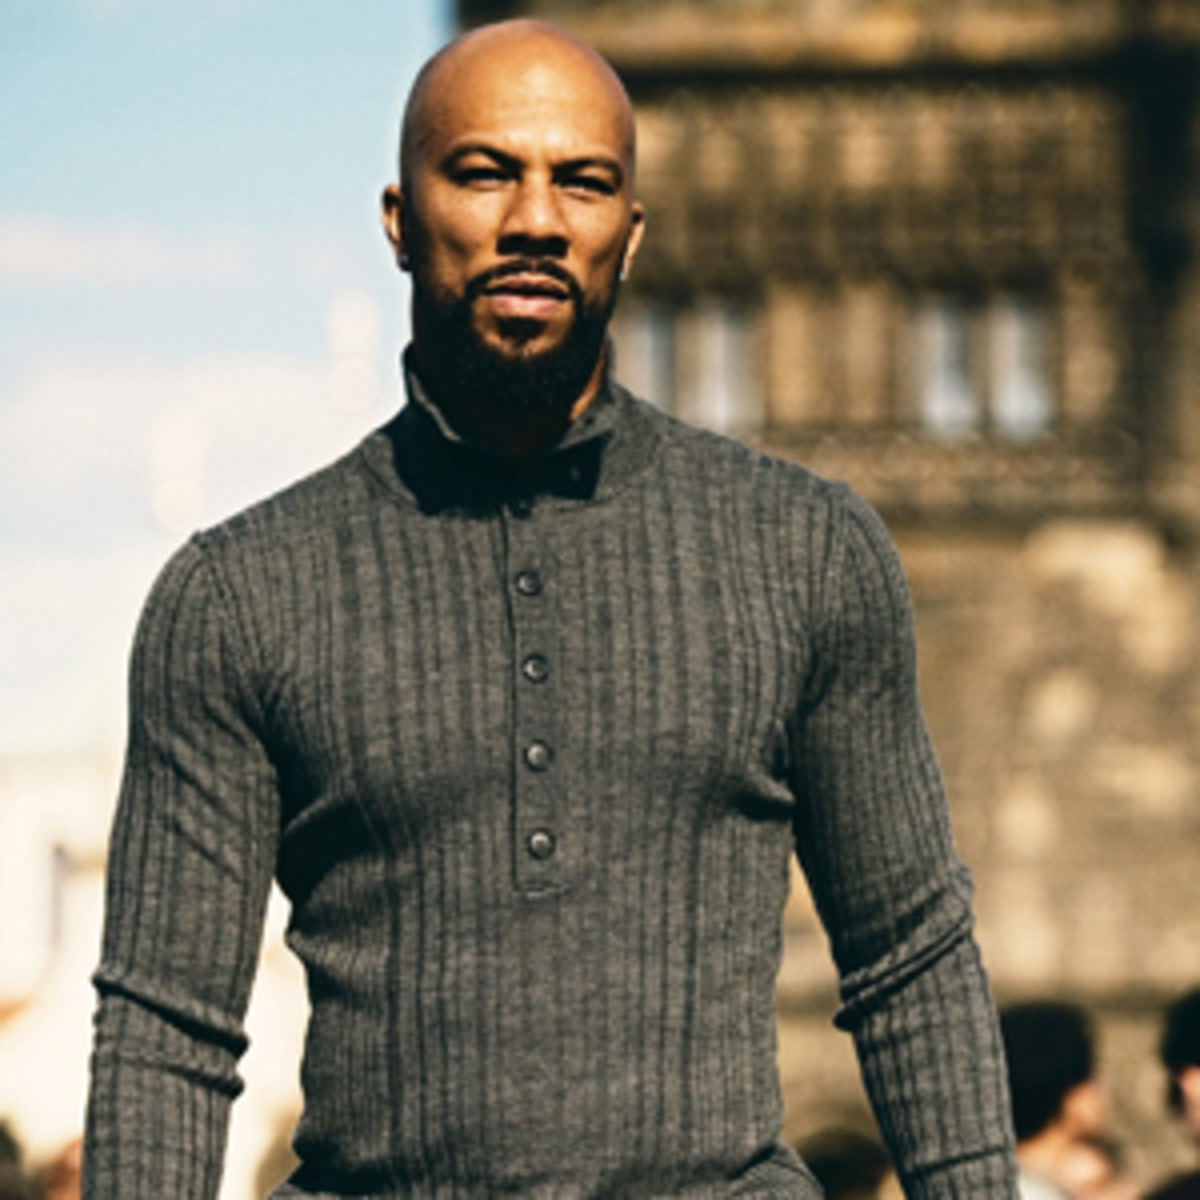 Common - Unique flow and delivery well respected artist.